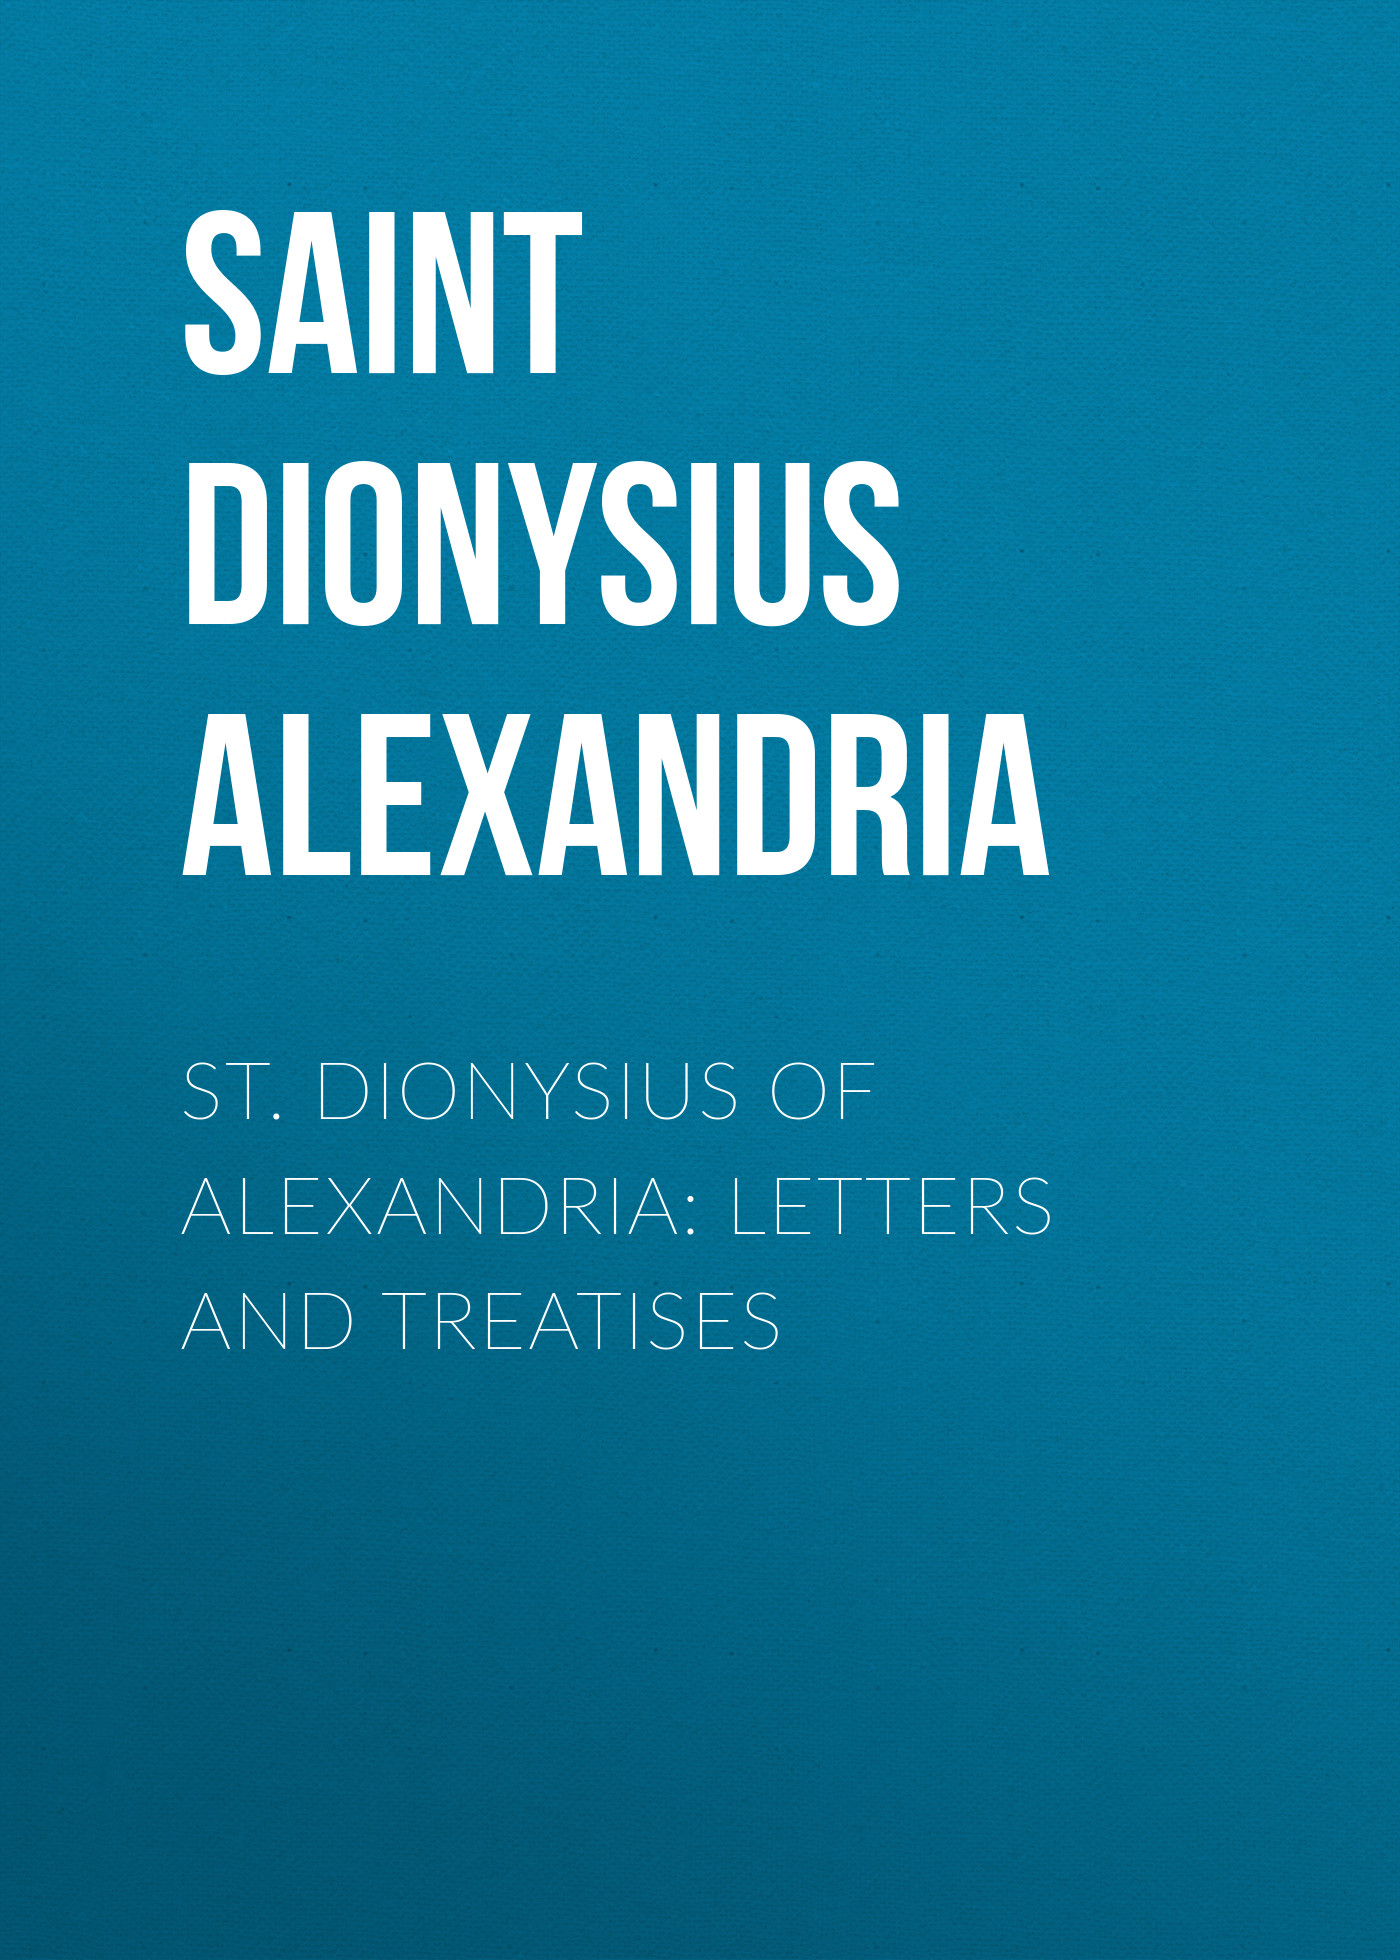 Saint Dionysius of Alexandria St. Dionysius of Alexandria: Letters and Treatises fashionable crown and letters embroidery flanging knitted beanie for men